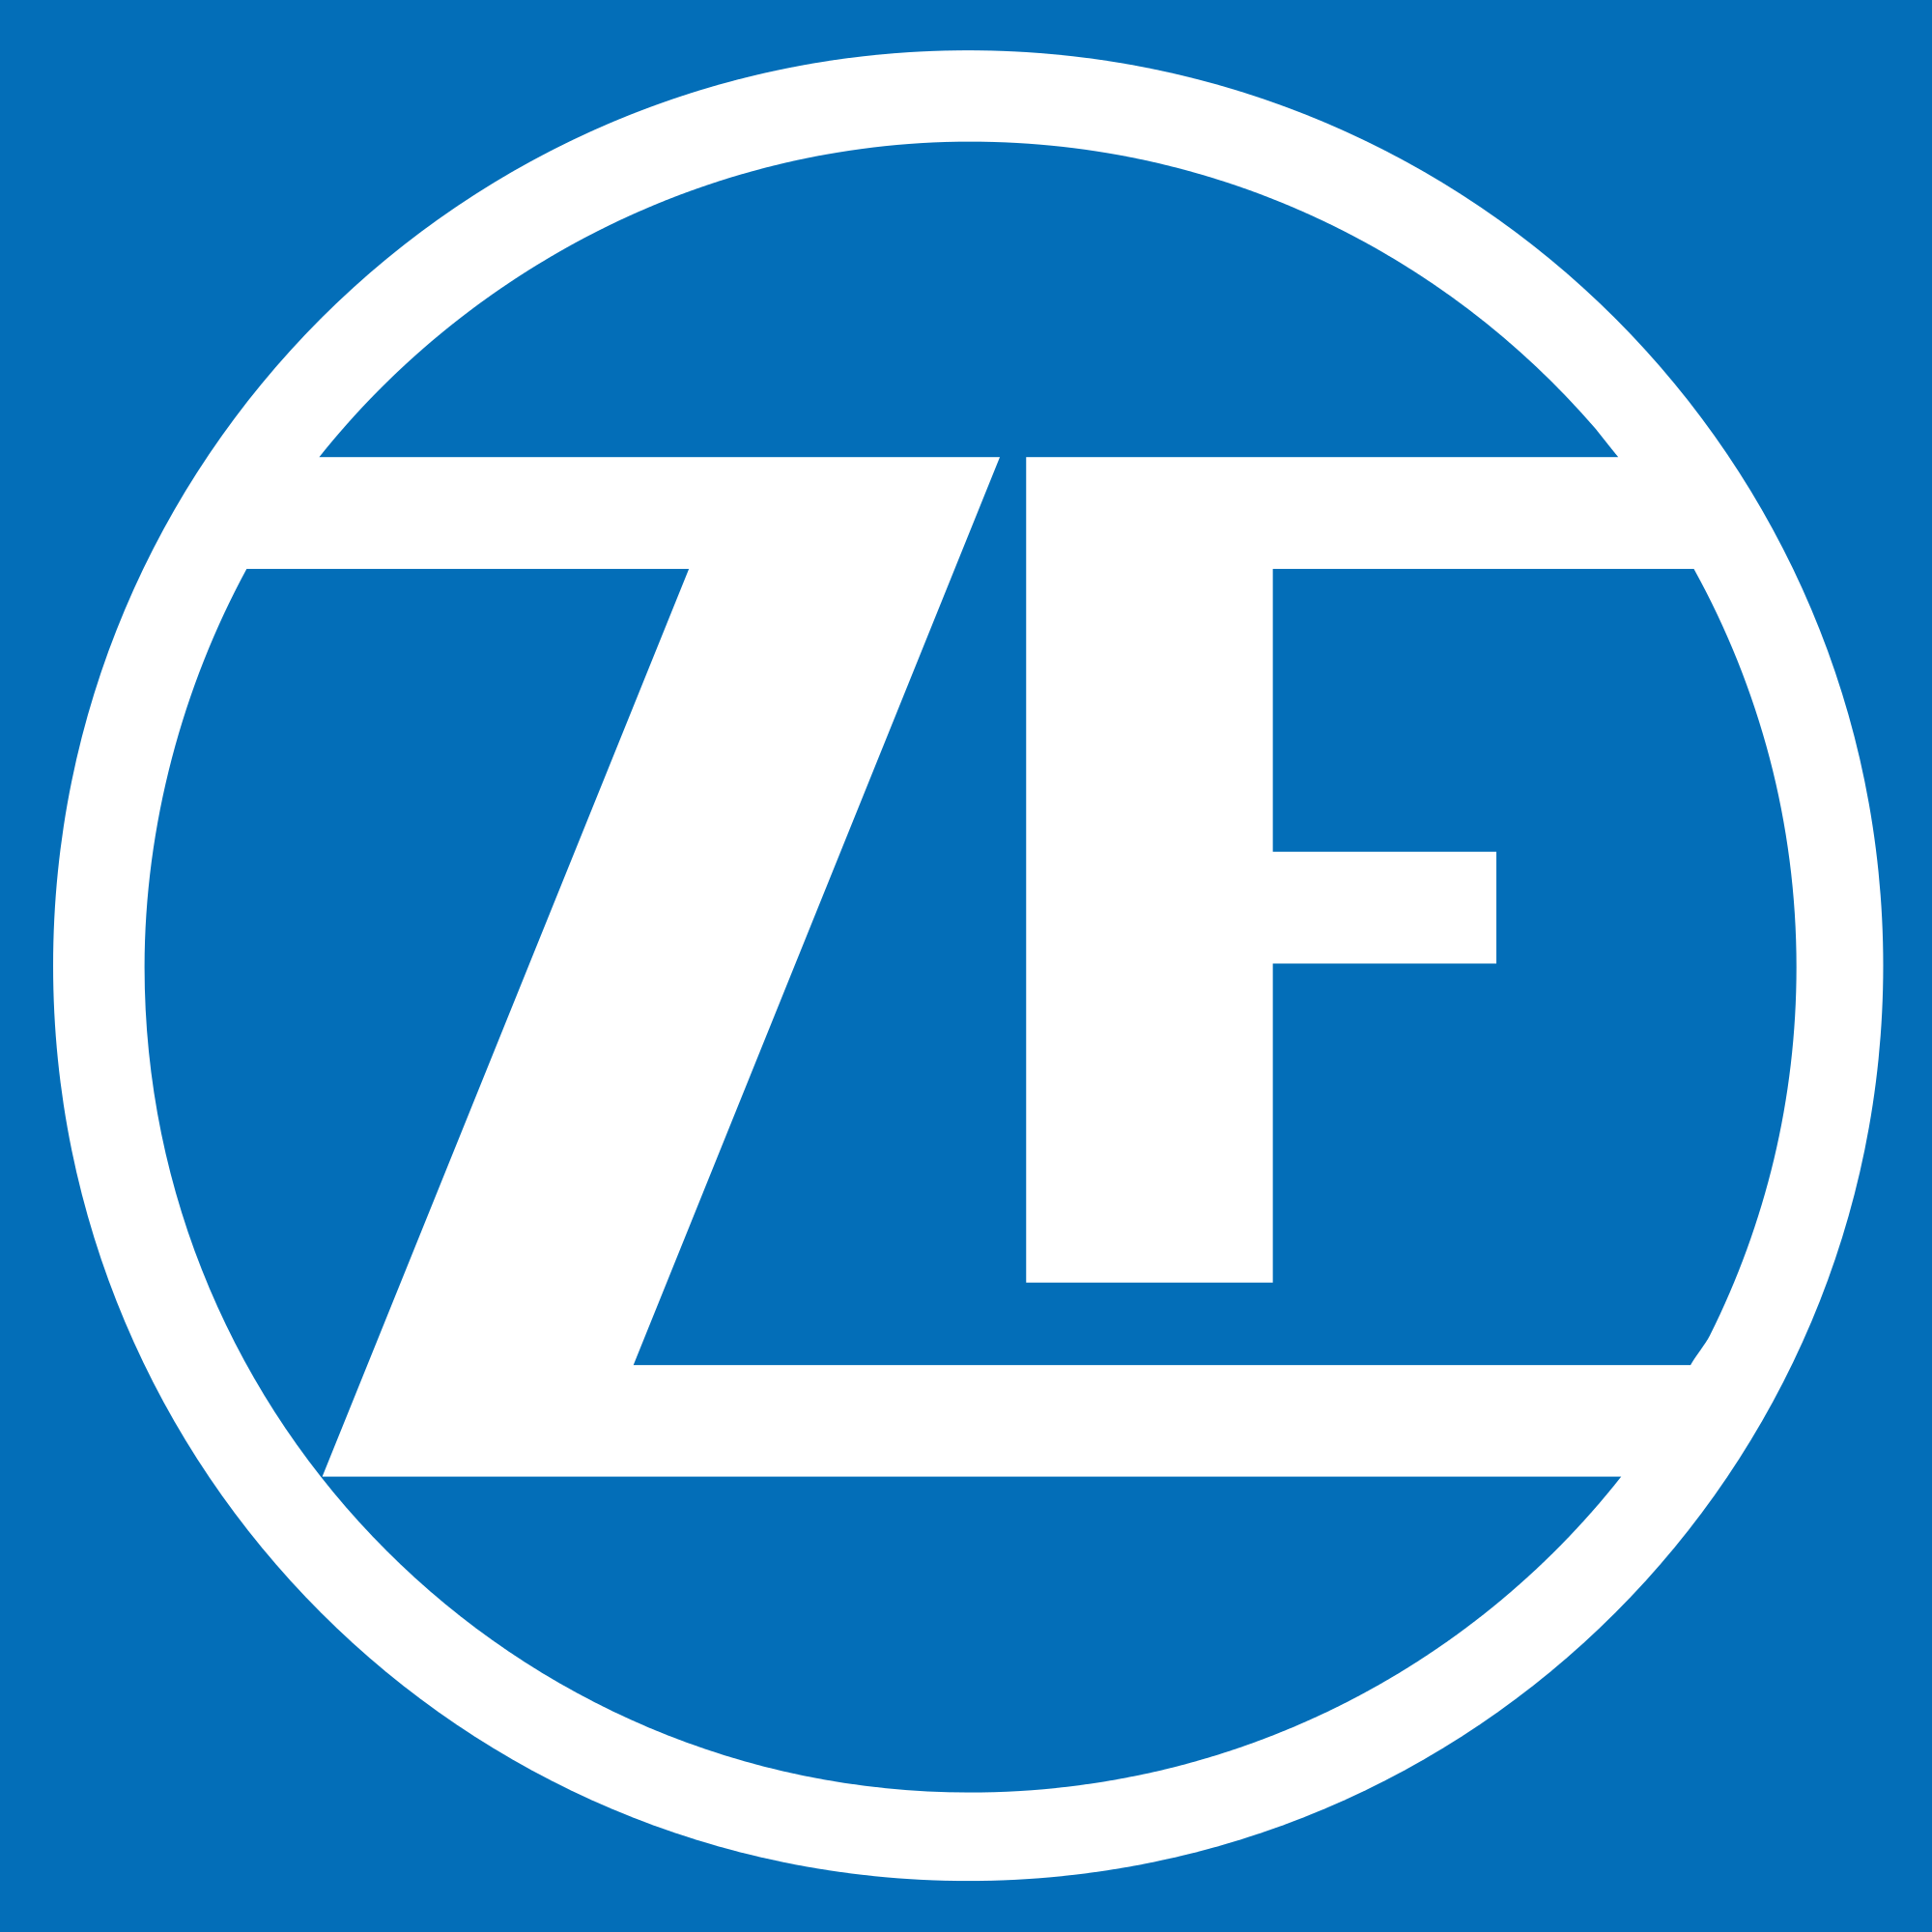 ZF Wind Power, LLC